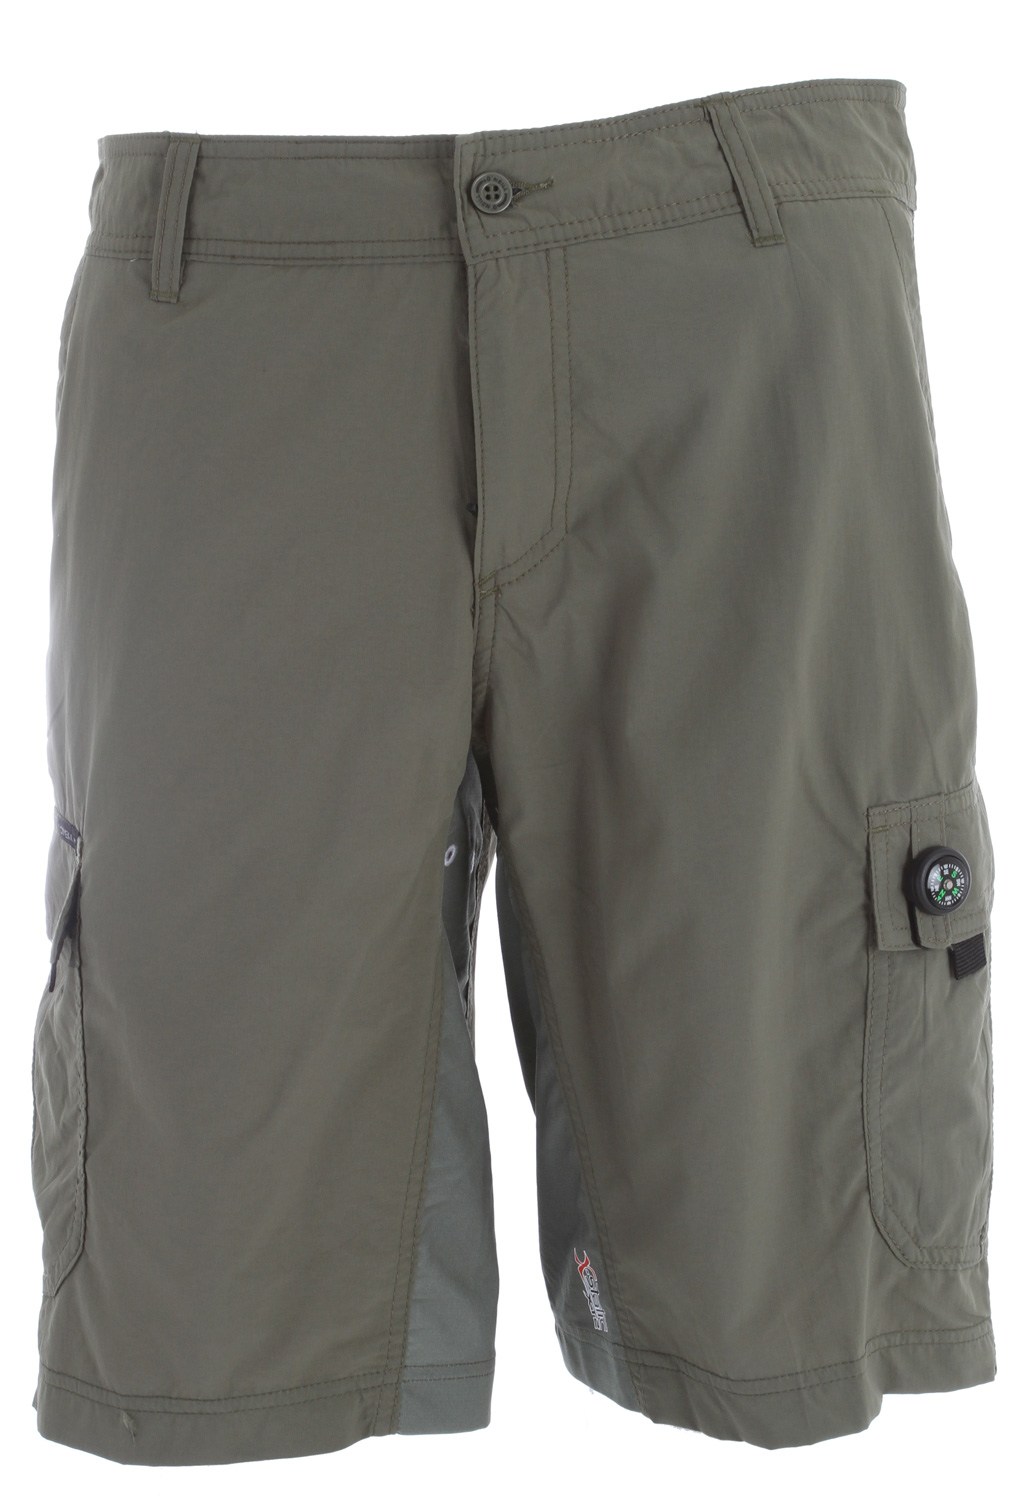 "Surf Key Features of the O'Neill Traveler Boardshorts: Antimicrobial nylon micro ripstop 21"" outseam Travel friendly boardshort Internal drawcord Belt loops Zipper fly Stretch inseam panel Back stow pocket Hidden key and passport pocket Cargo pockets Woven label and embroidery - $40.95"